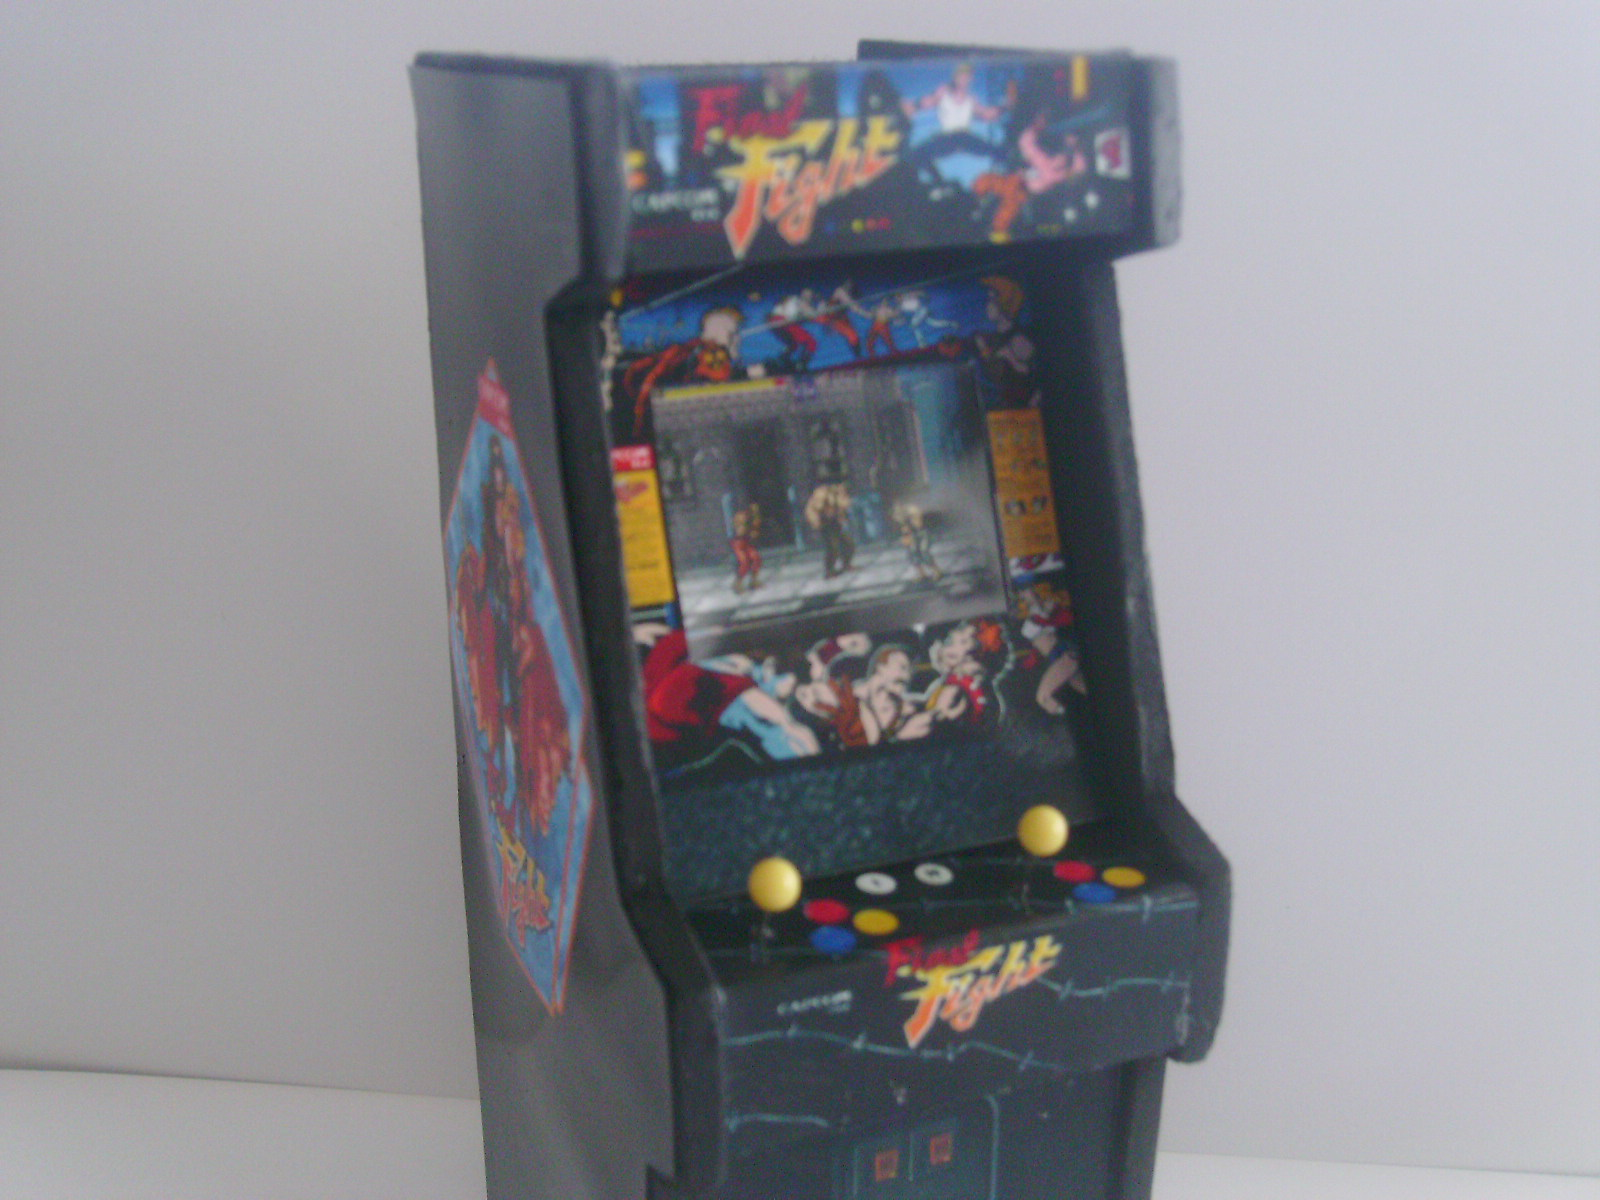 Retro Heart Final Fight Scale Arcade Model